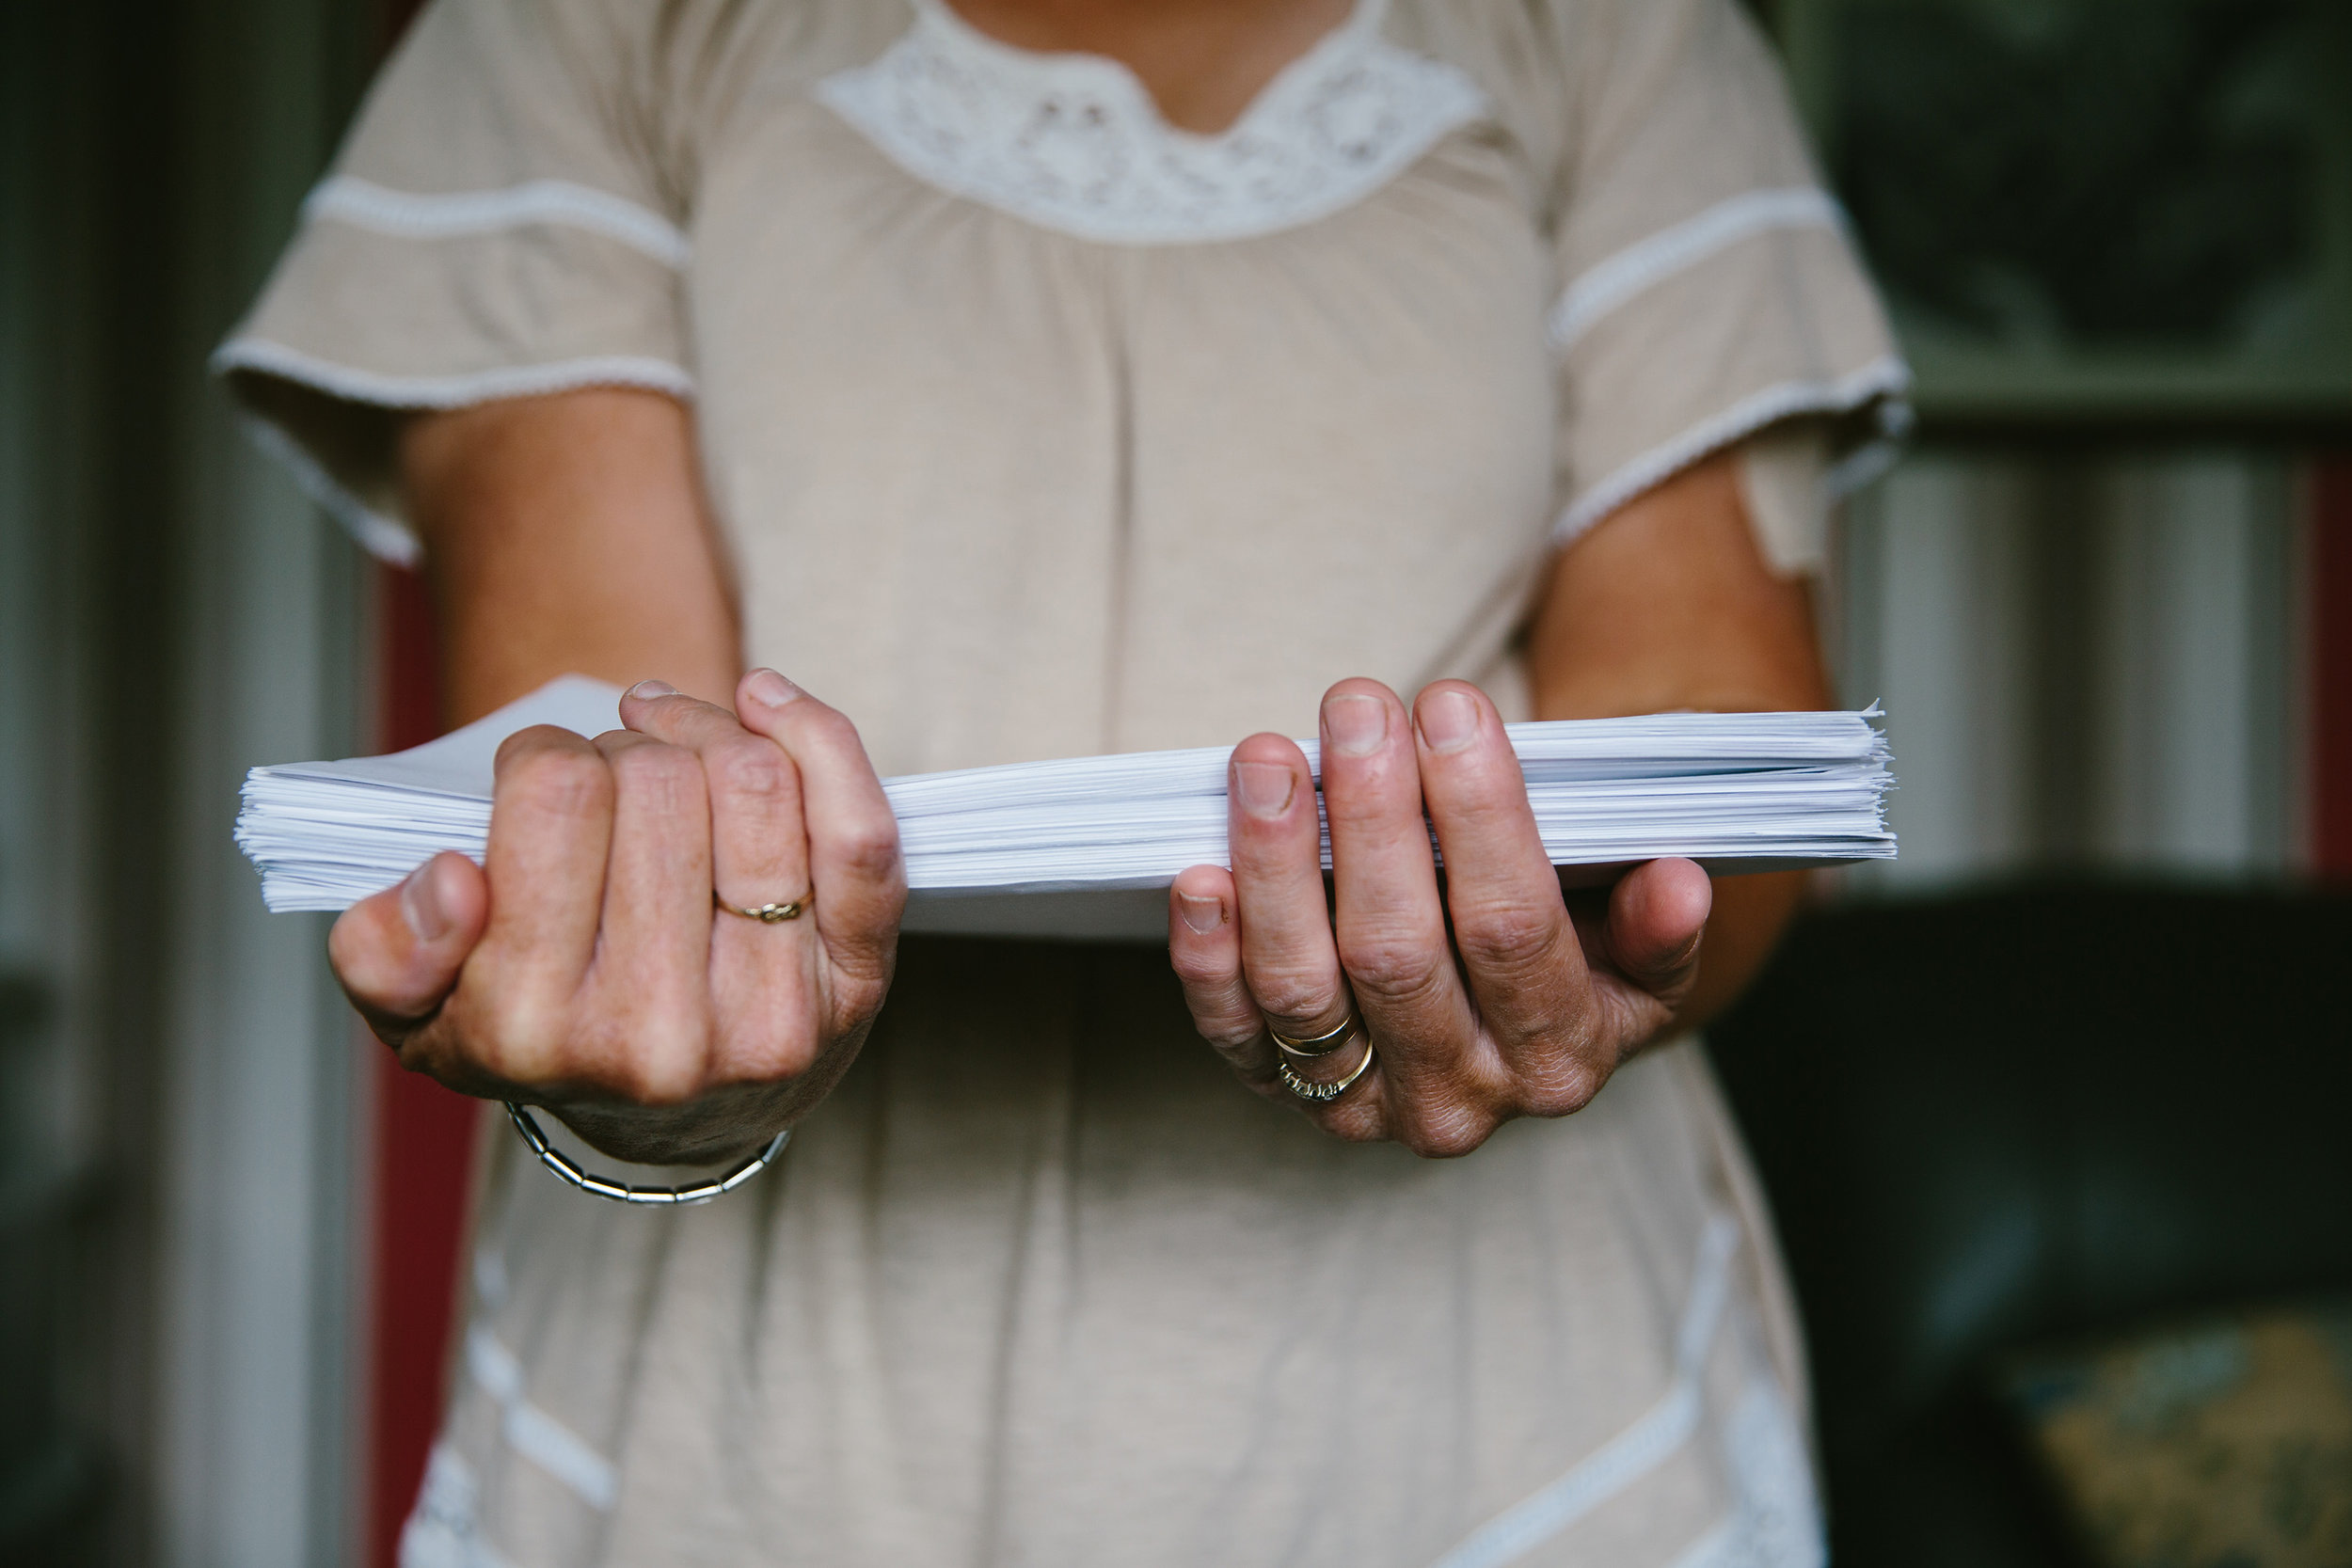 The correspondence relating to her case runs to hundreds of pages. In over a decade of discussion between health professionals, Jackie says her GP has been the only one who has consistently fought her corner. Others refused to believe the extent of her suffering. Some even advocated that she should be sectioned. Doctors initially told her mesh complications were one-in-a-million